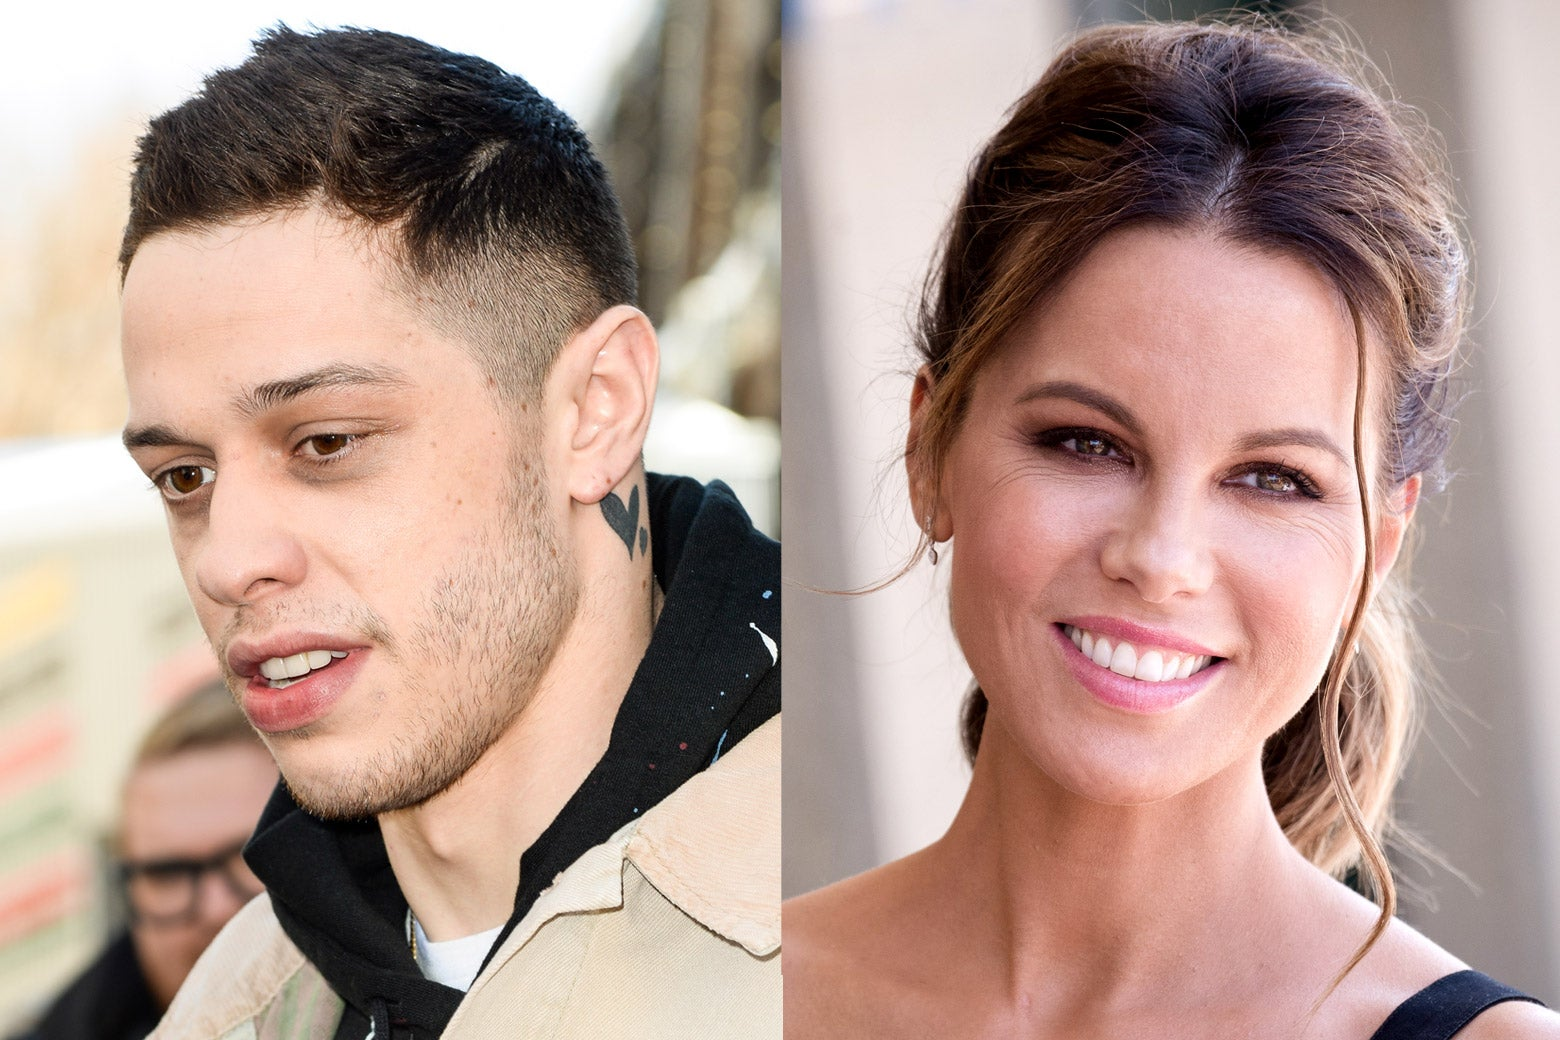 Portraits of Pete Davidson and Kate Beckinsale side by side from the shoulders up.